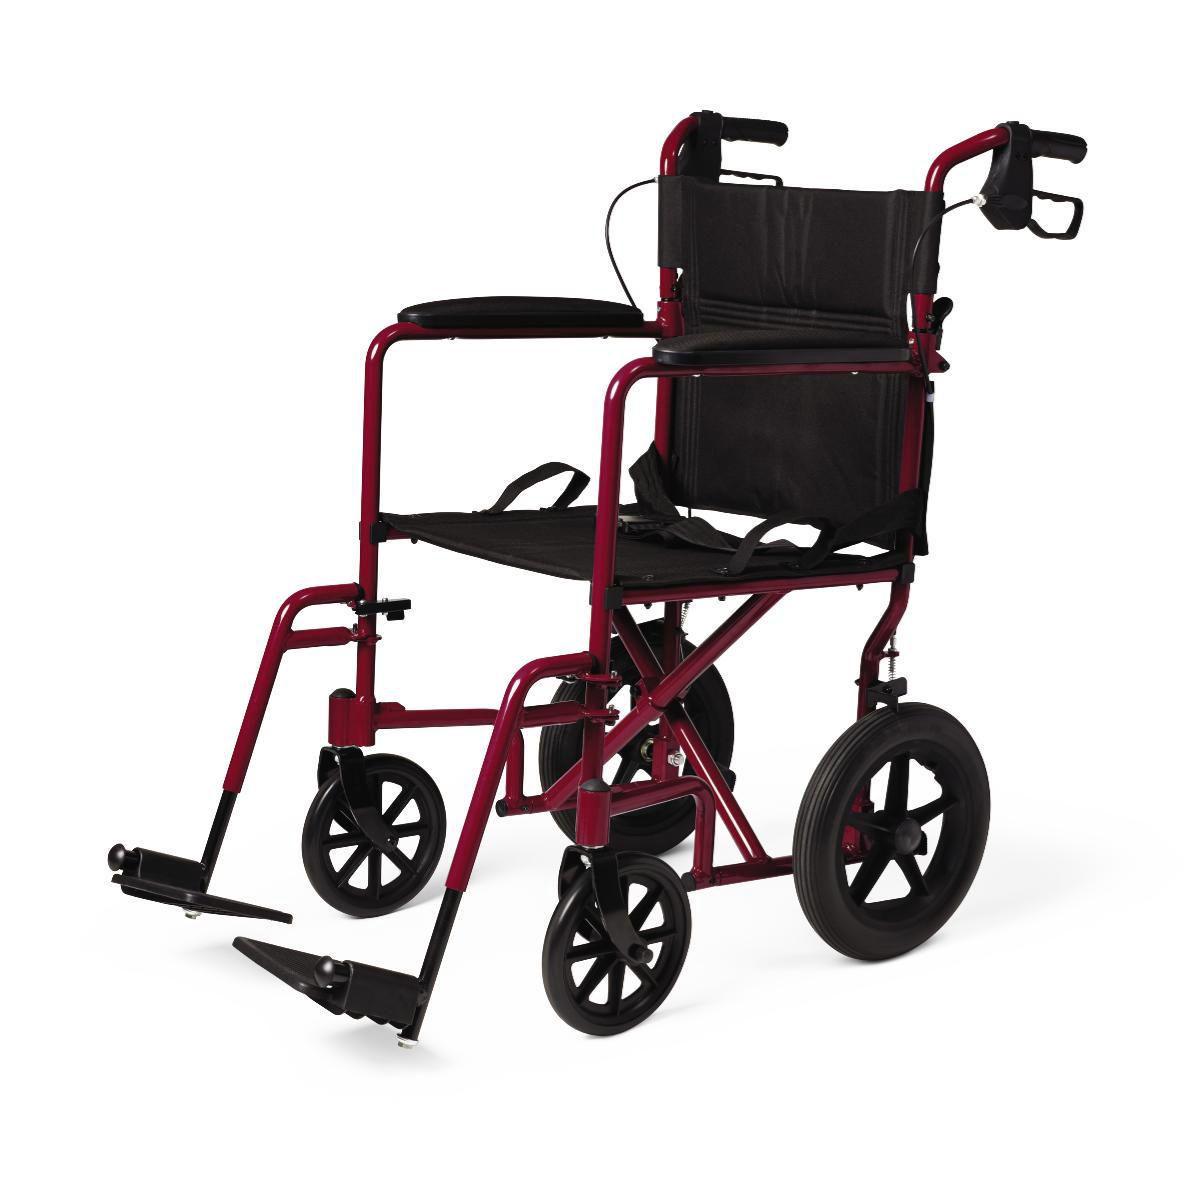 chair lightweight ergonomic healthcare product ultra karman wheelchair ergo s chairs transport